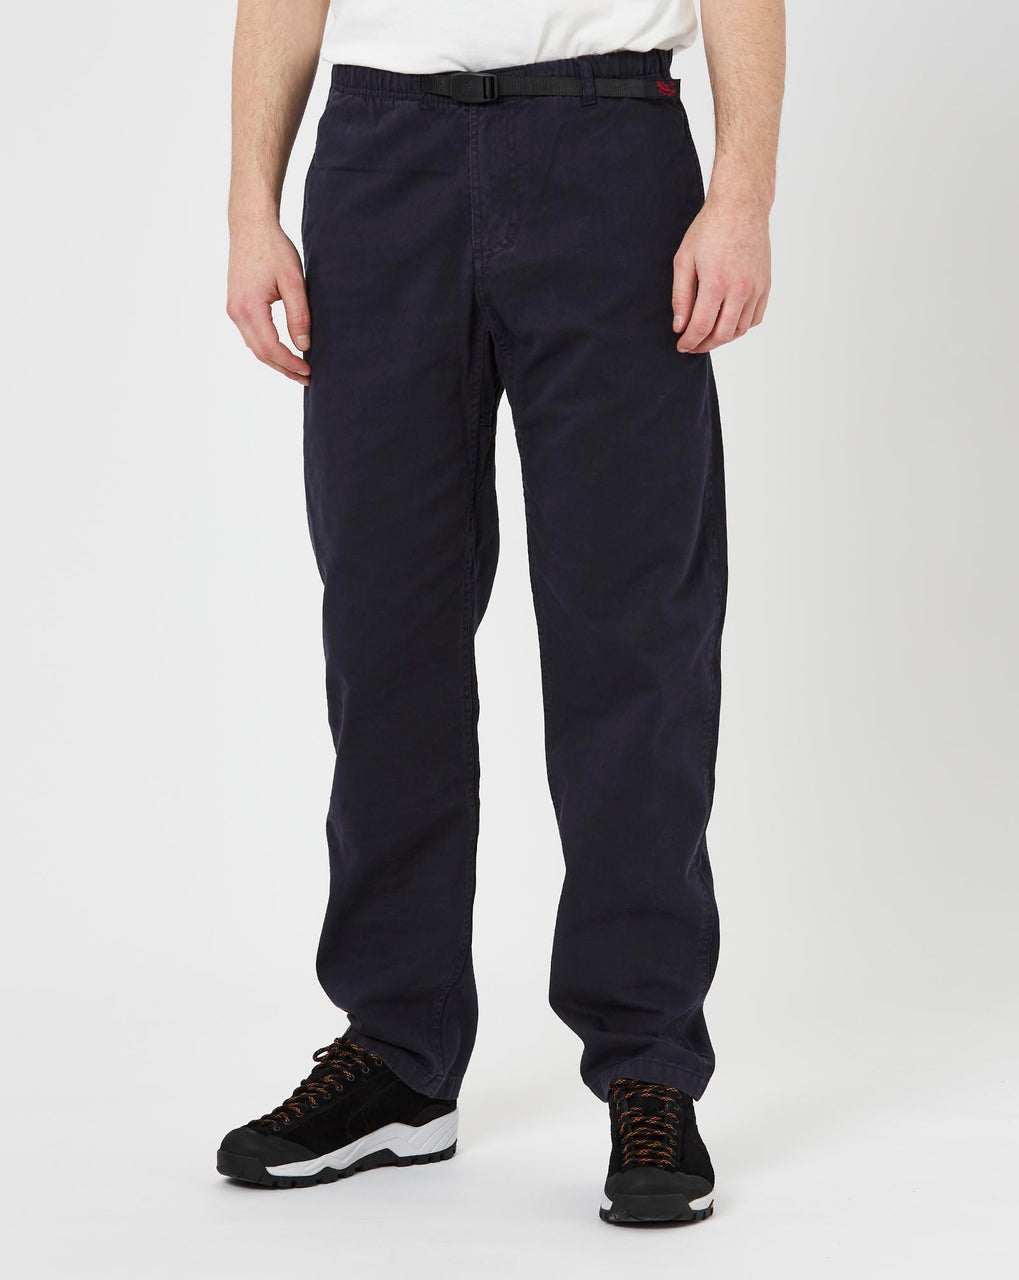 Gramicci G Pants (Double Navy)